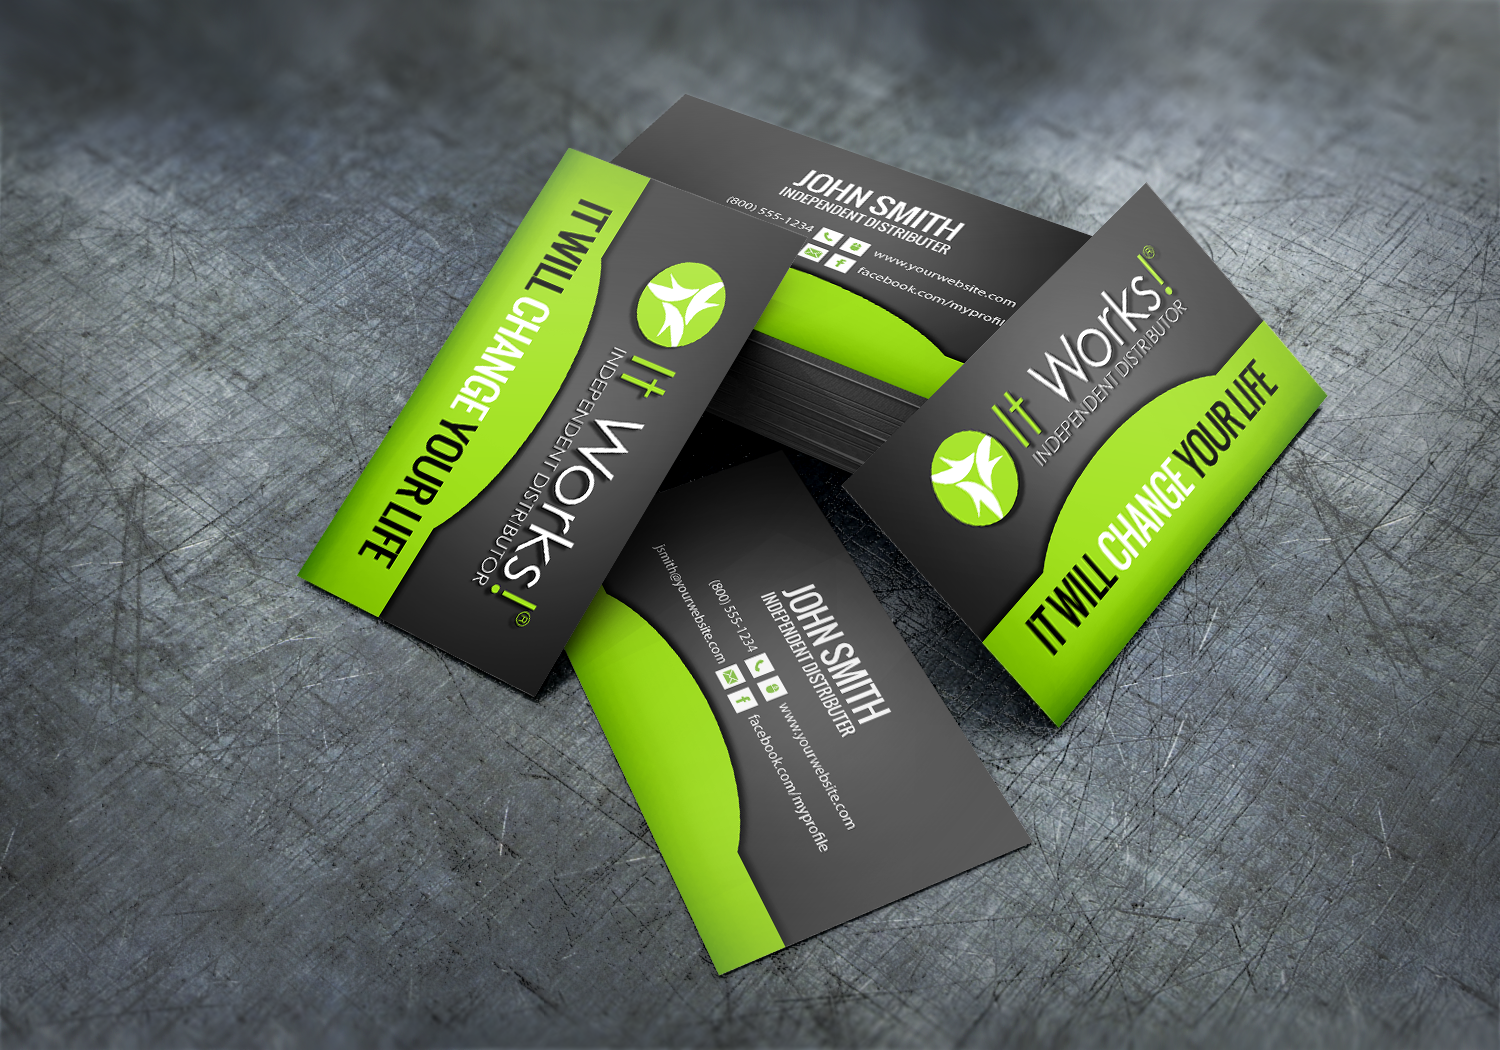 New Business Cards Are Now Here And Ready Just For You It Works Distributors Mlm Itworks Hair Nail It Works Printing Business Cards Free Business Cards